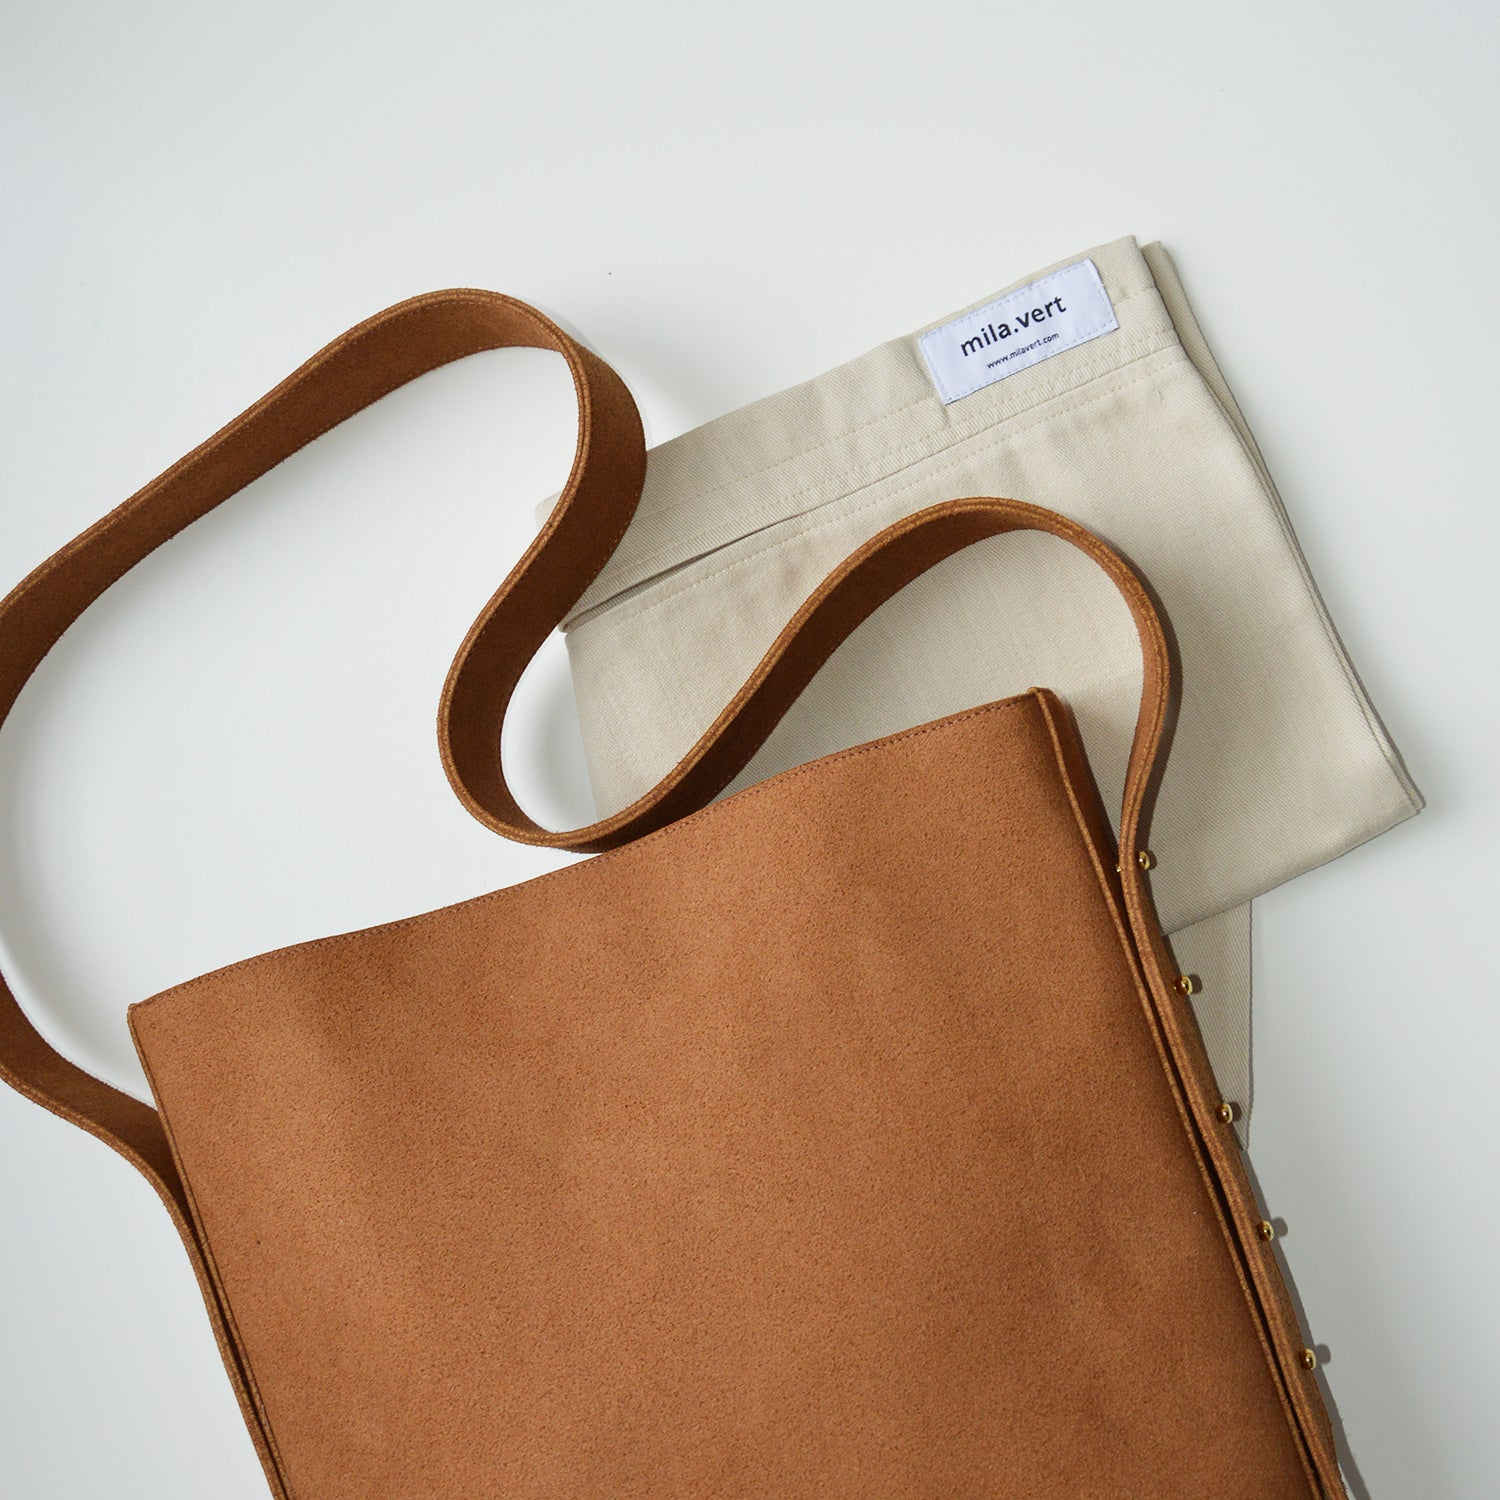 Adjustable strap tote bag